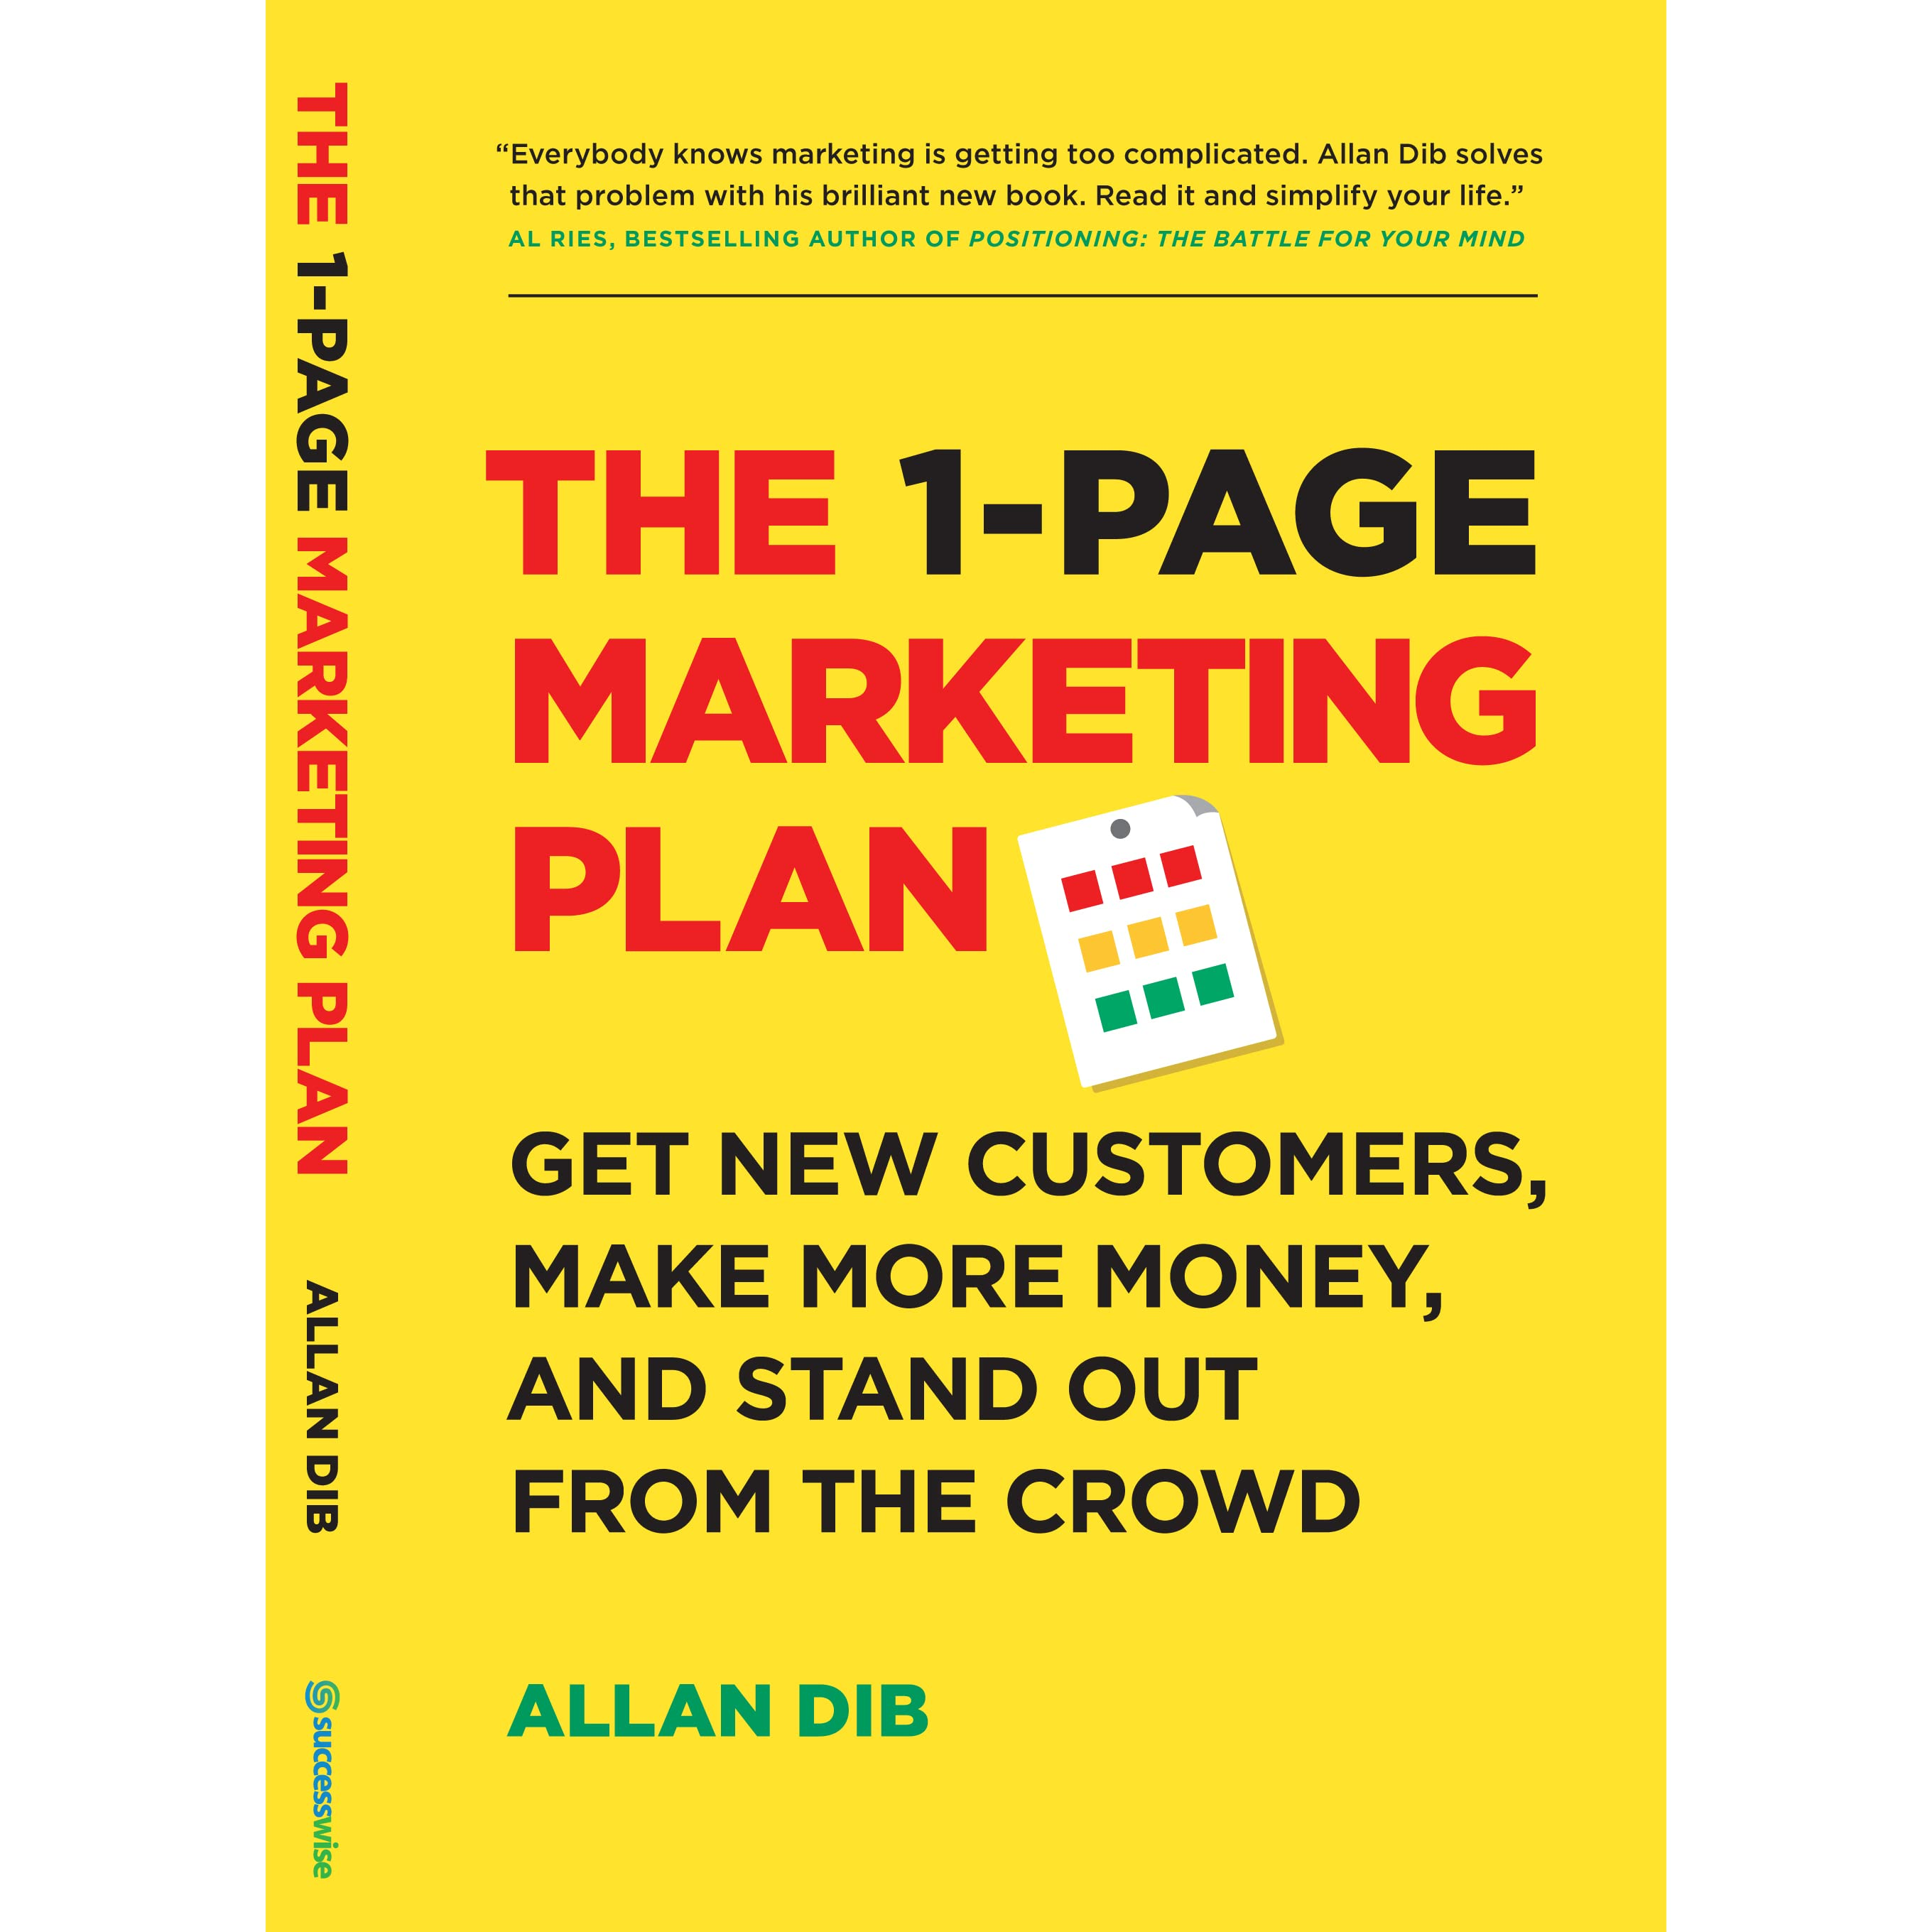 The 1-Page Marketing Plan: Get New Customers, Make More